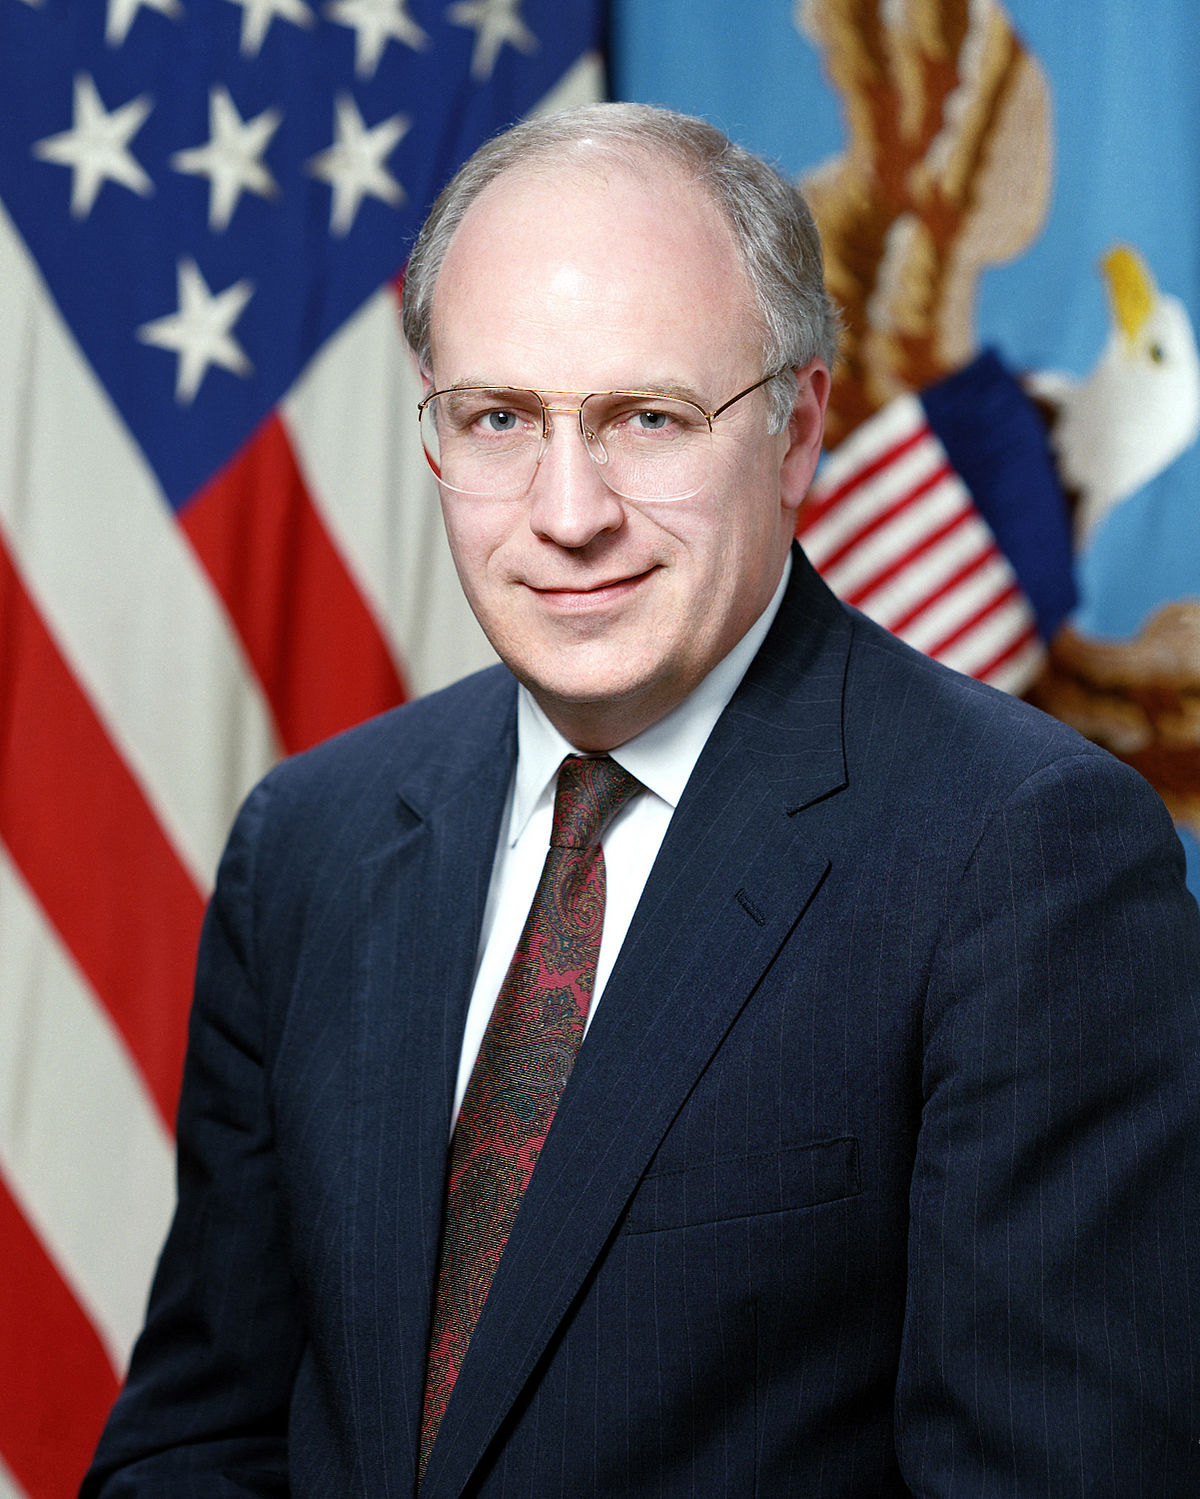 Cheney dick national washington matchless topic